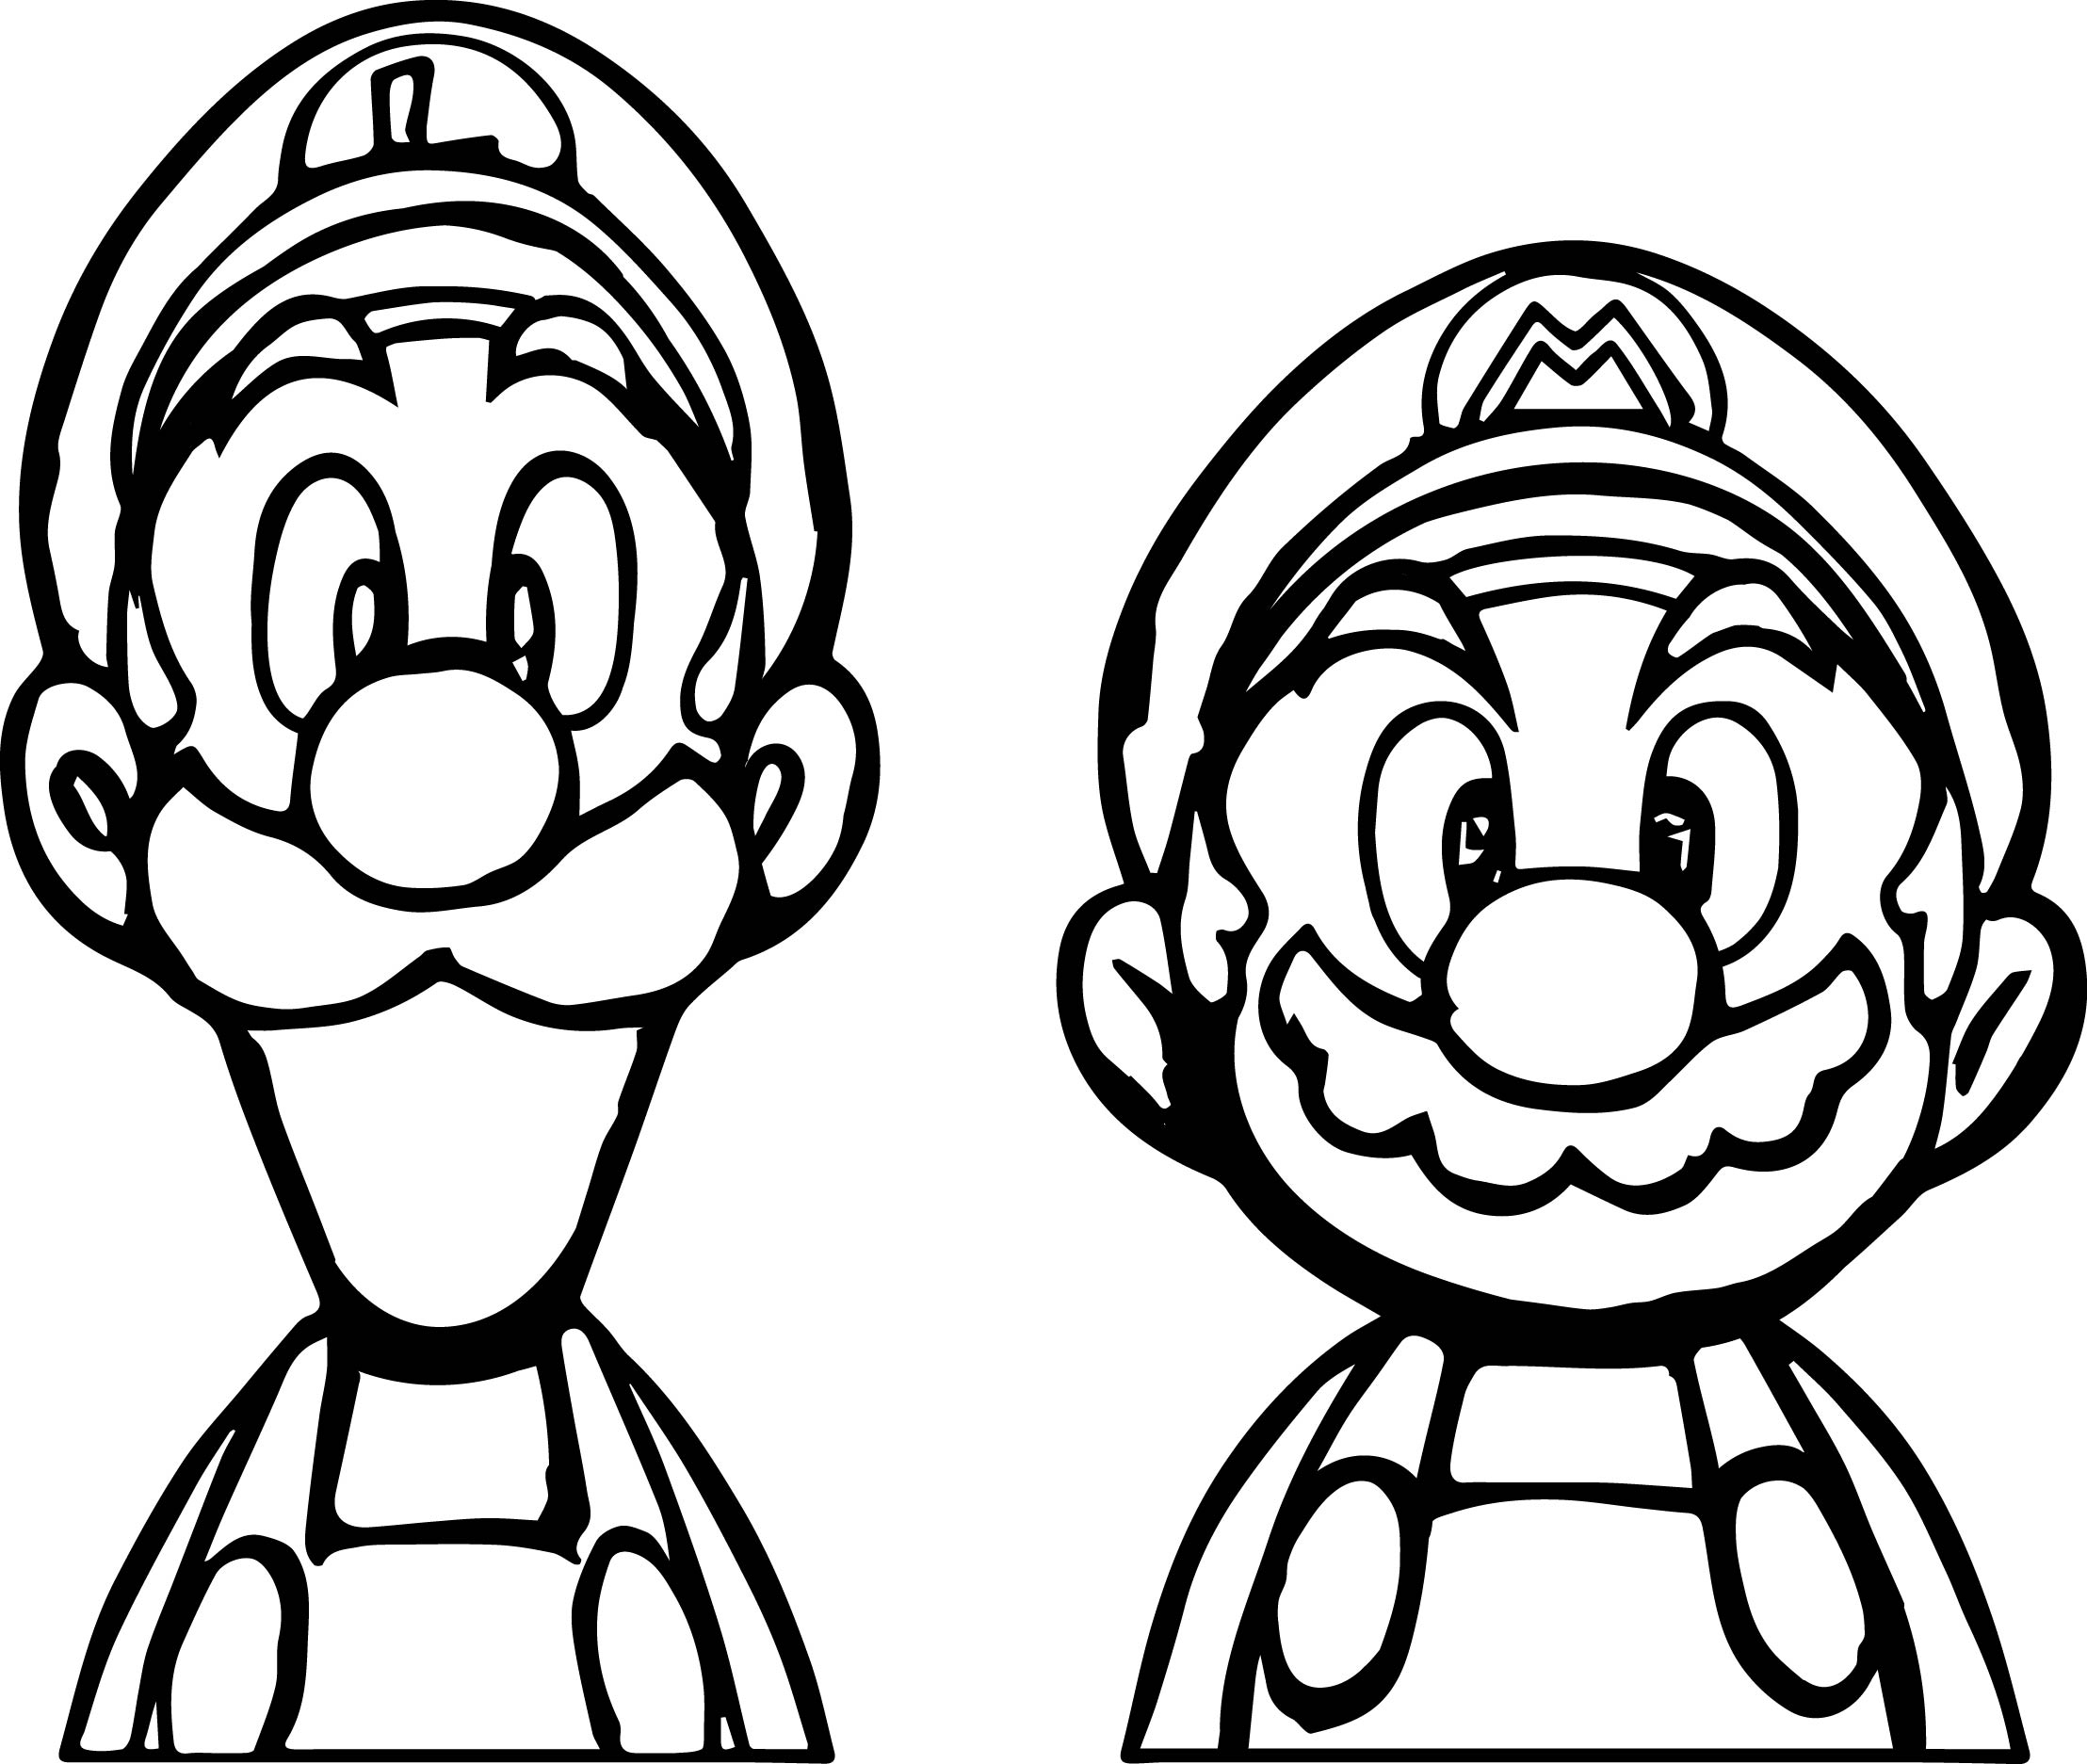 mario and luigi coloring colouring pages of mario yoshi luigi and wario for kids luigi and mario coloring